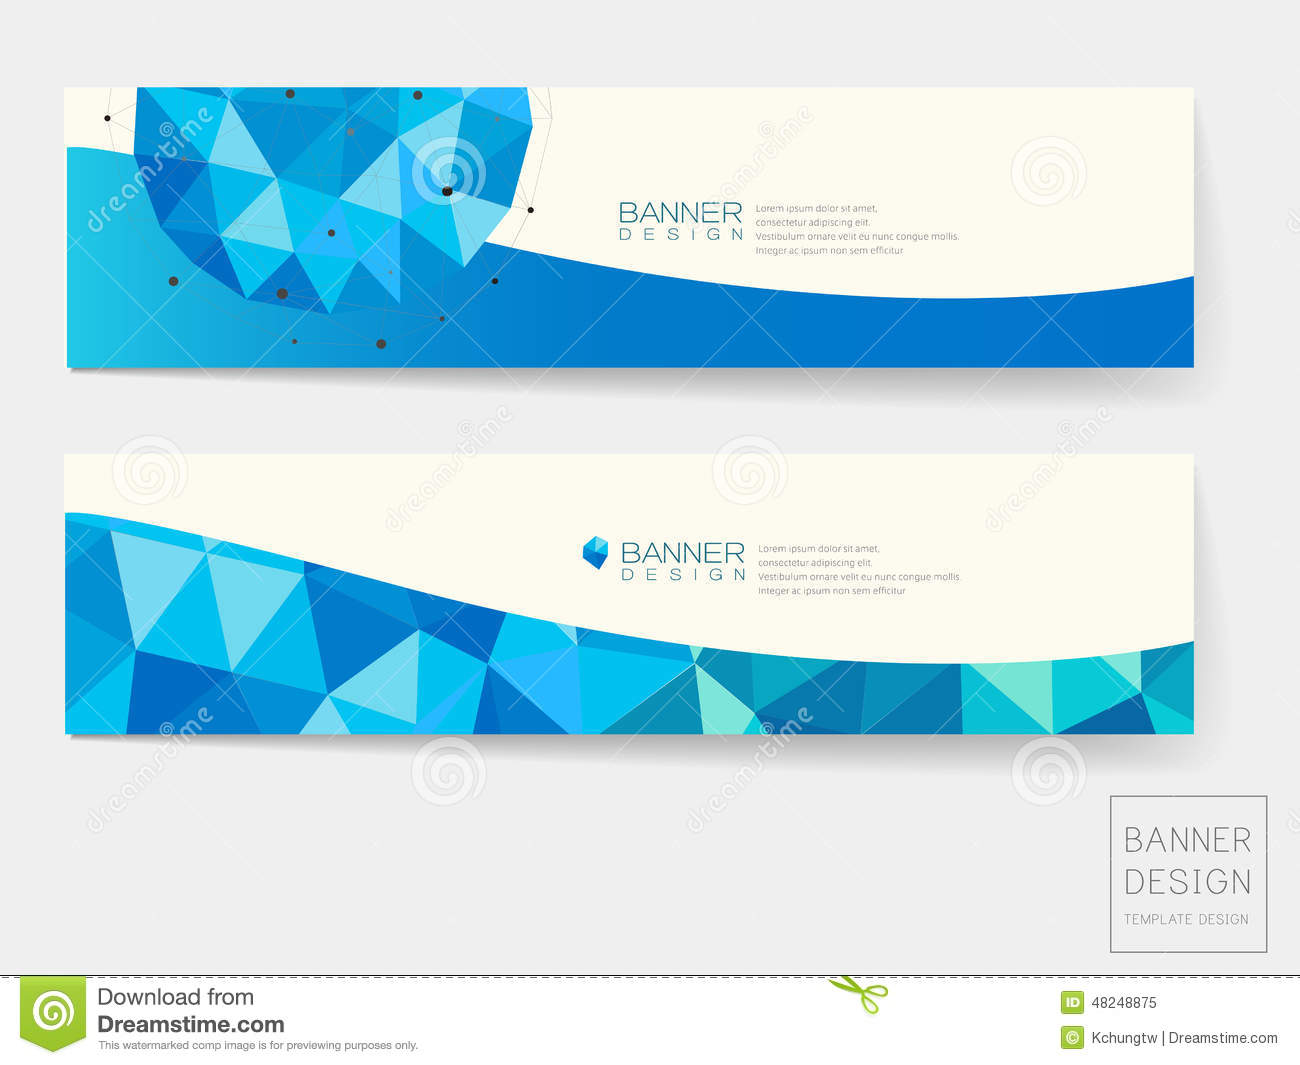 Design elements banner - Royalty Free Vector Download Banner Design With Geometric Blue Crystal Elements